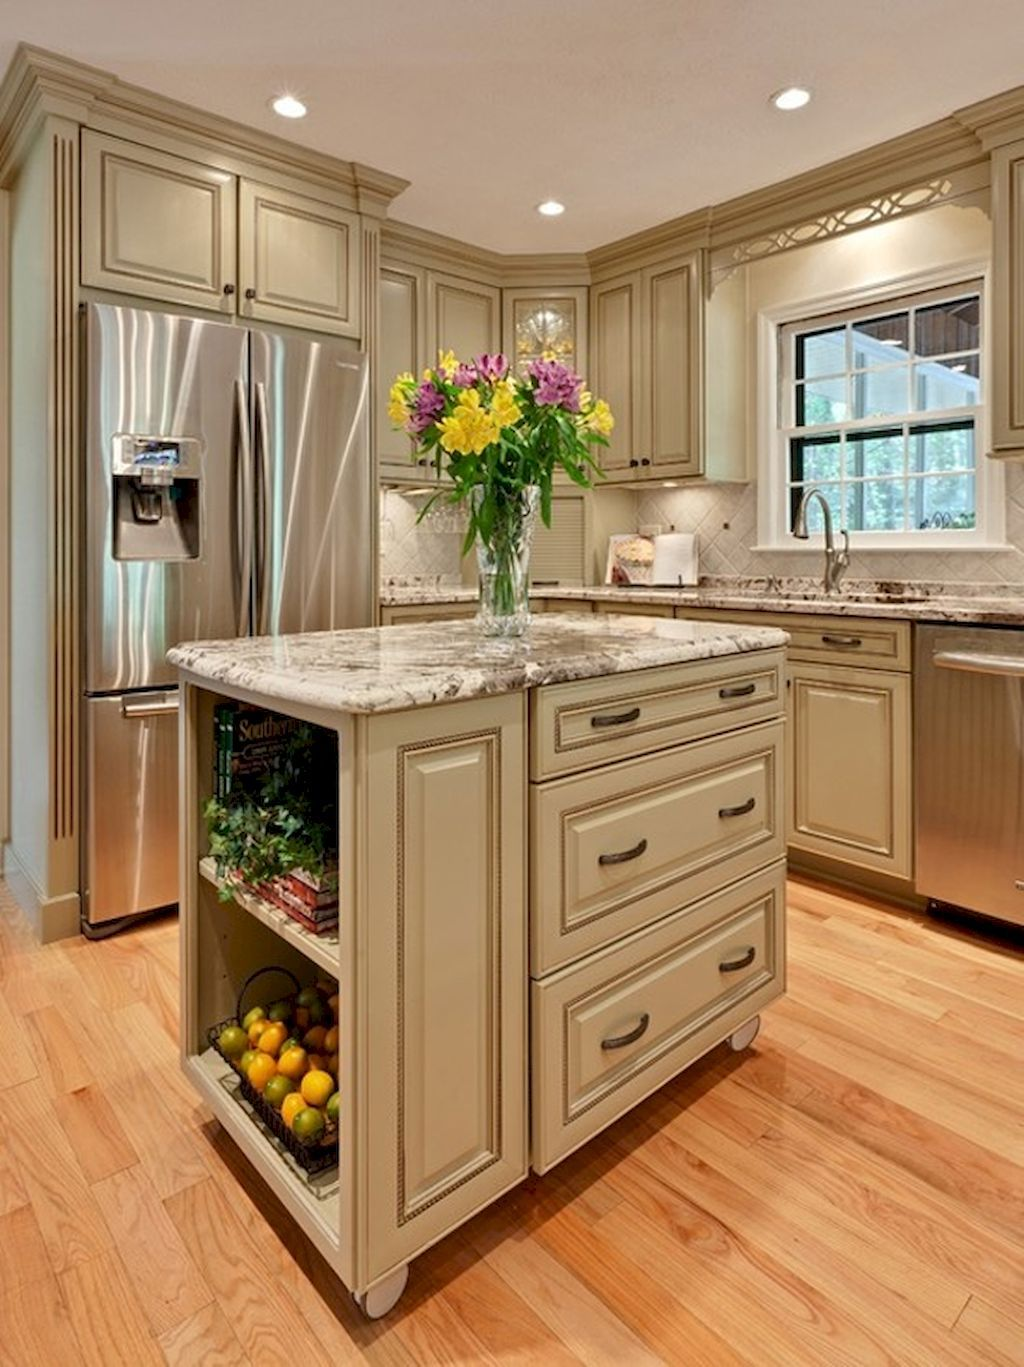 Adorable inspirations for small kitchen remodel ideas on a budget